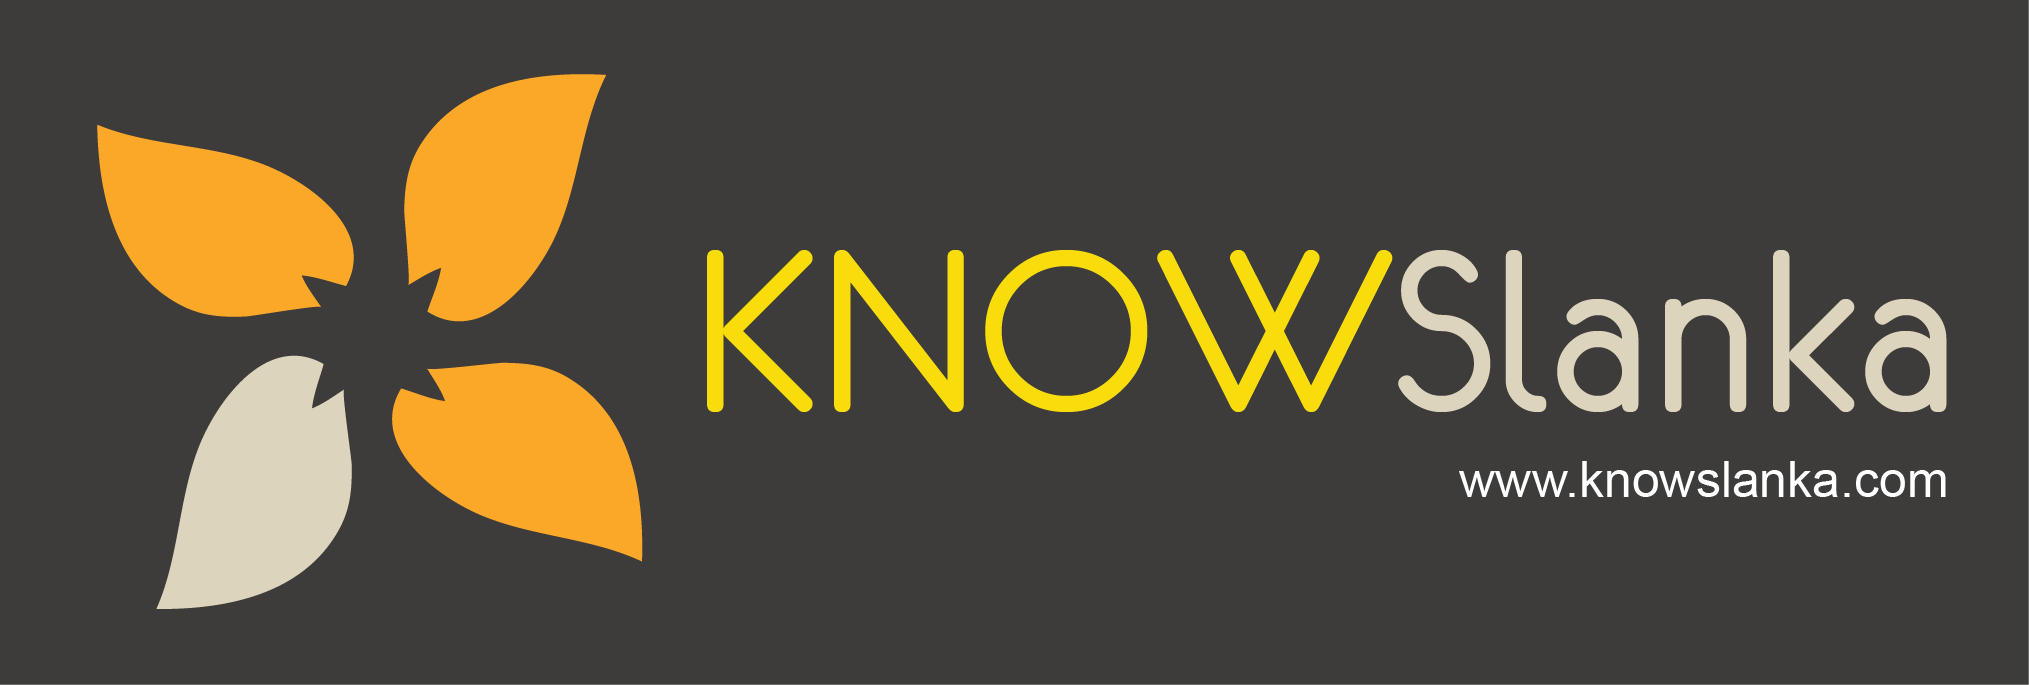 Knows Lanka Logo